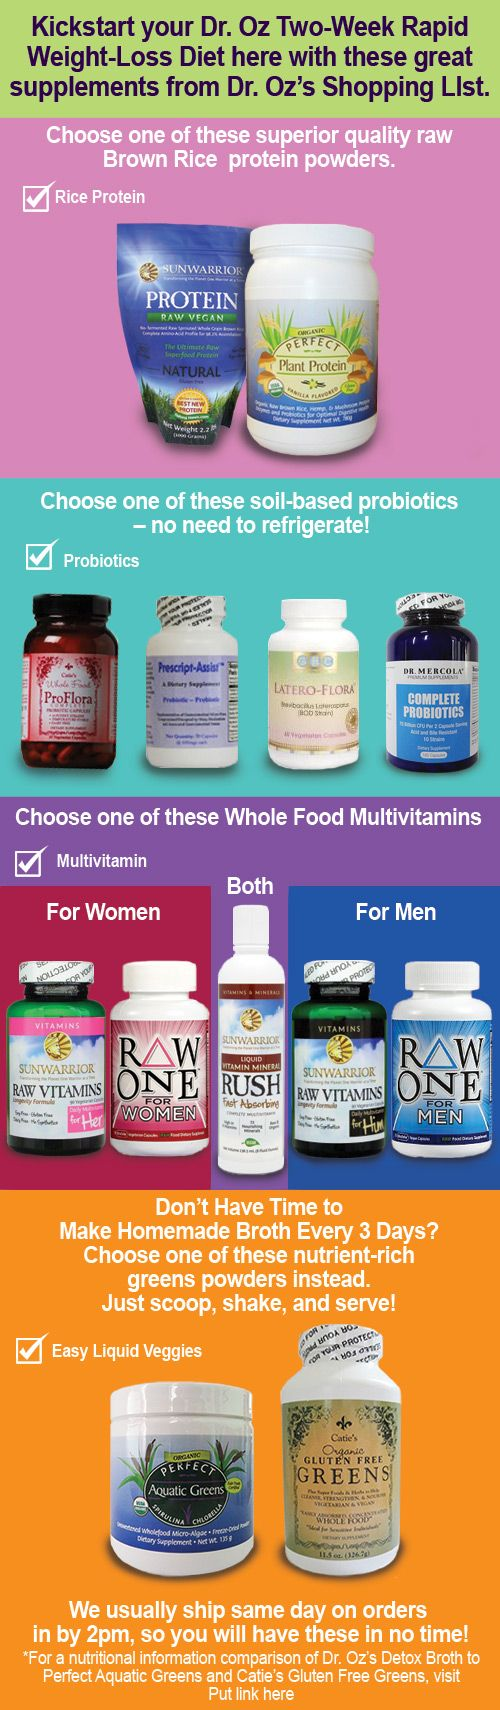 Dr. Oz 2 Week Diet: Enjoy Your Two Week Rapid Weight Loss! by Colleen Russell Last week, Dr. Oz announced his new 2 week diet plan; the Dr. Oz Two Week Rapid Weight Loss Diet. We love a diet plan...